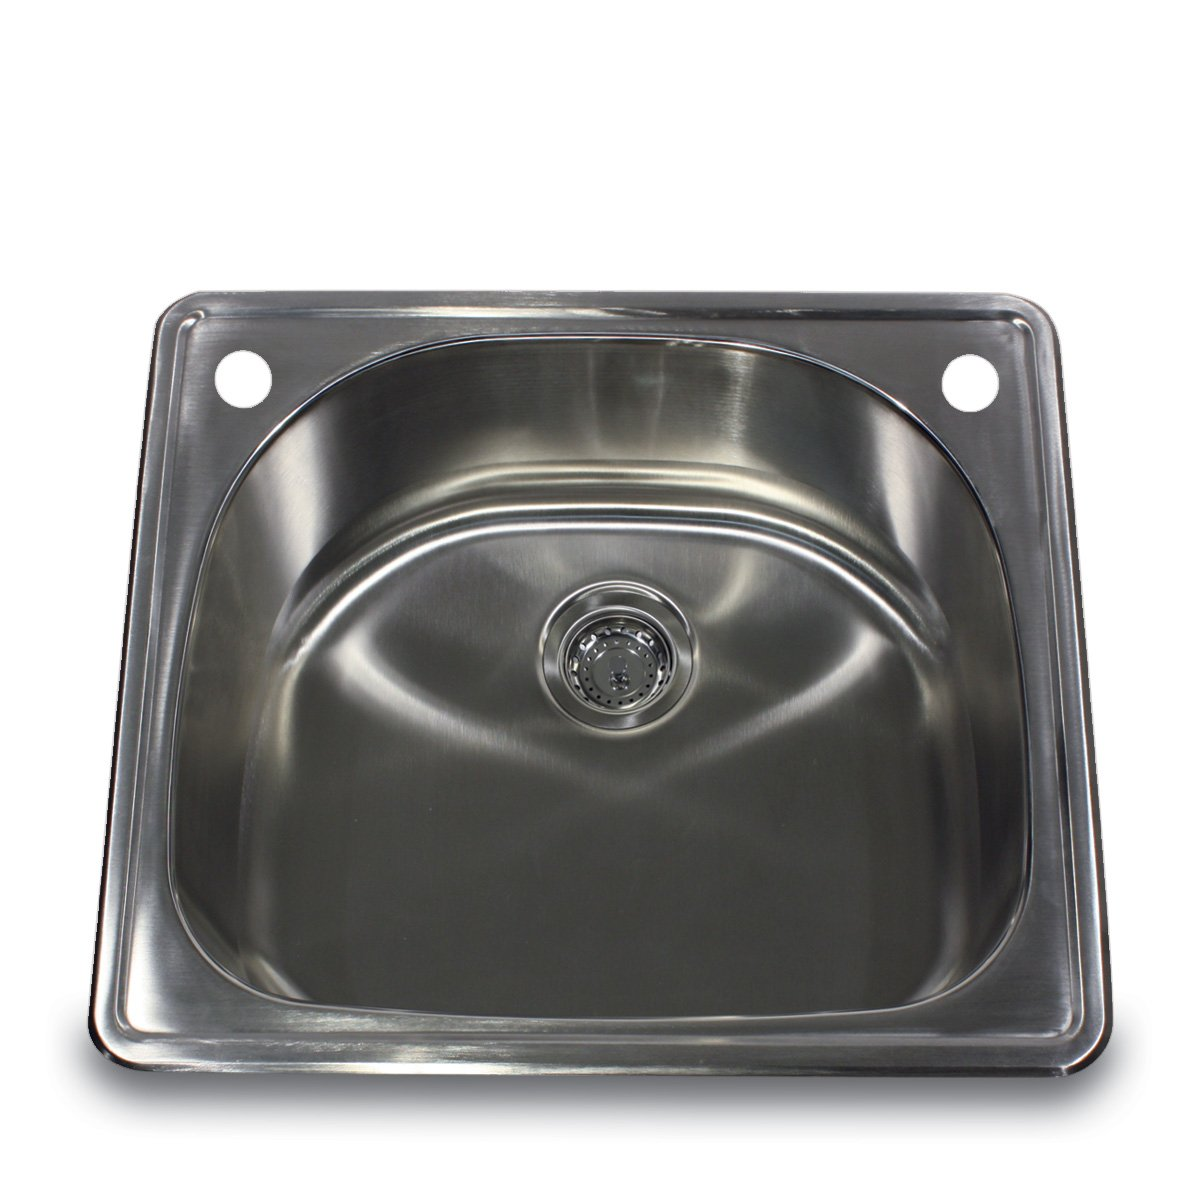 Charmant Nantucket Sinks NS2522 D 25 Inch 18 Gauge D Bowl Single Bowl Self Rimming  Drop In Kitchen Sink, Stainless Steel     Amazon.com